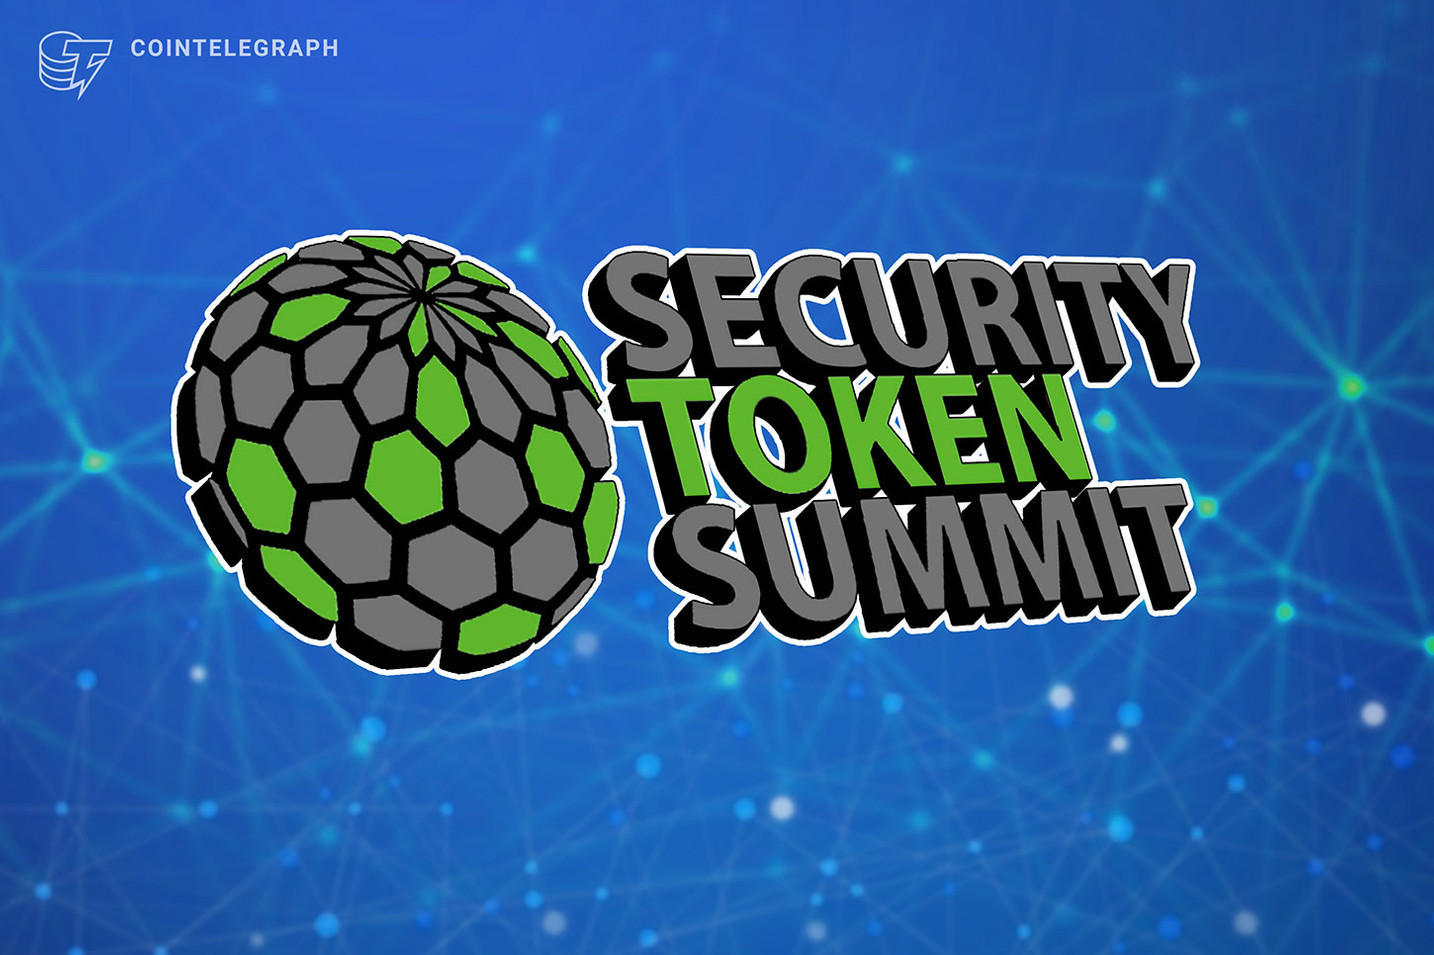 Join the largest gathering of Security Token experts on March 25